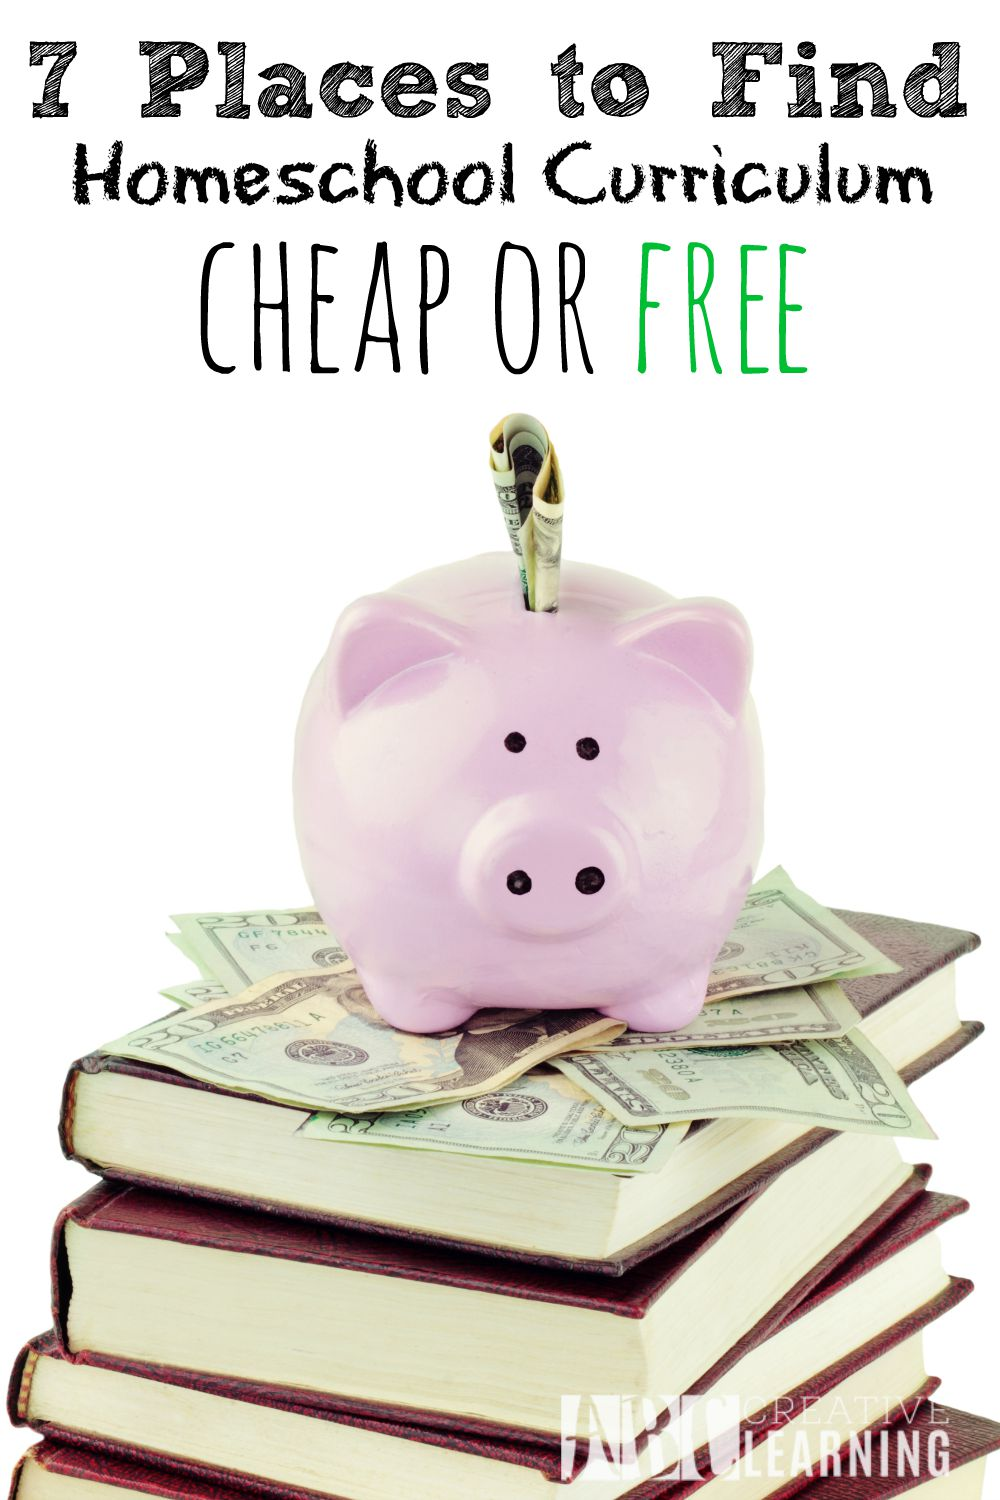 7 Places to Find Homeschool Curriculum Cheap or Free